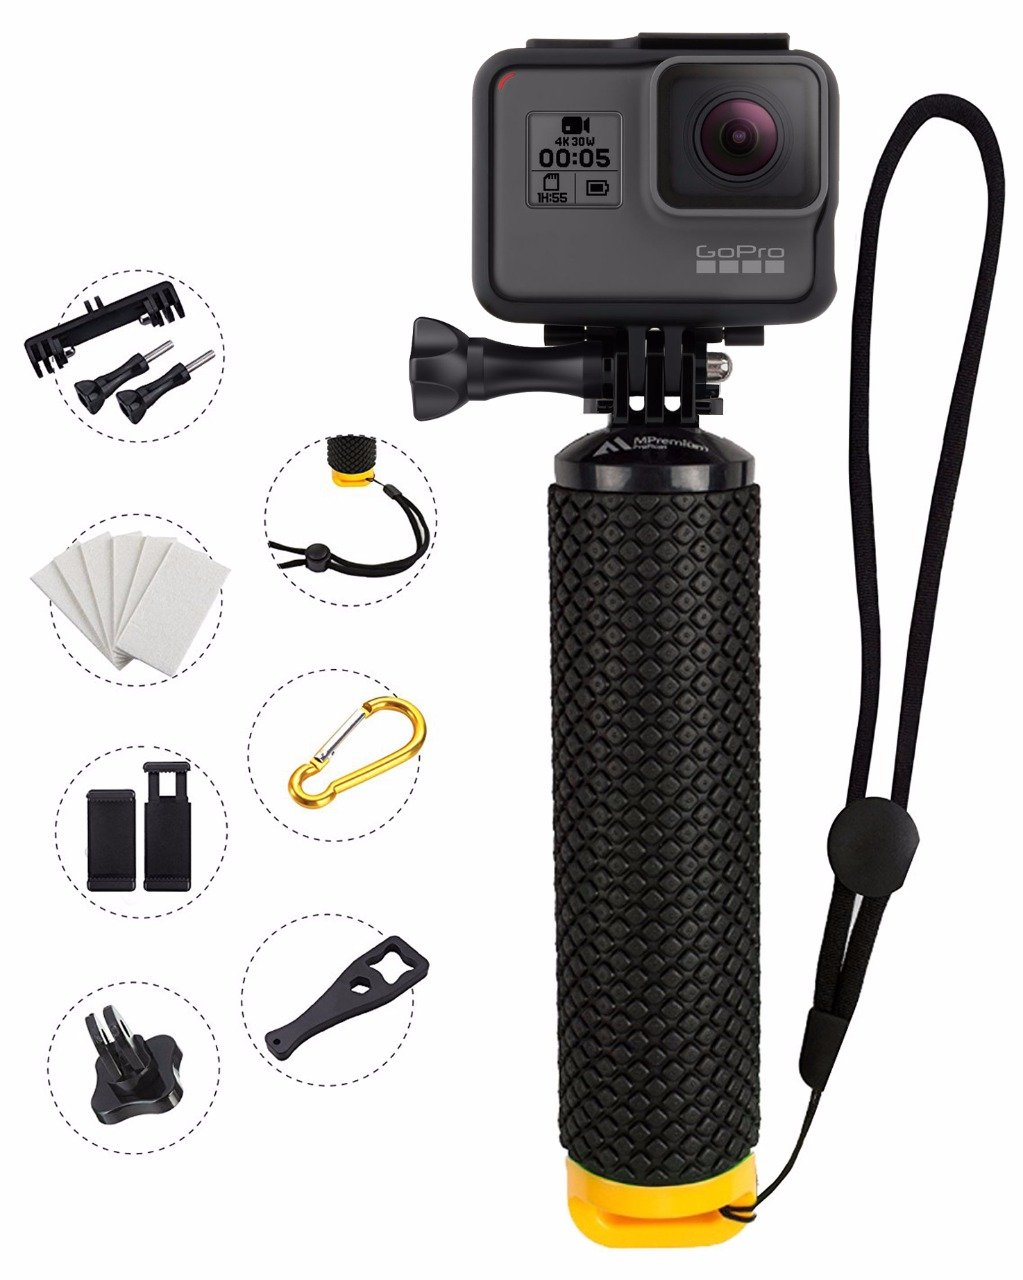 MiPremium Waterproof Floating Hand Grip Compatible with GoPro Cameras Hero Session Black Silver Hero 2 3 3+ 4. Handler Plus Free Handle Mount Accessories for Water Sport and Action Cameras (Yellow) by MiPremium